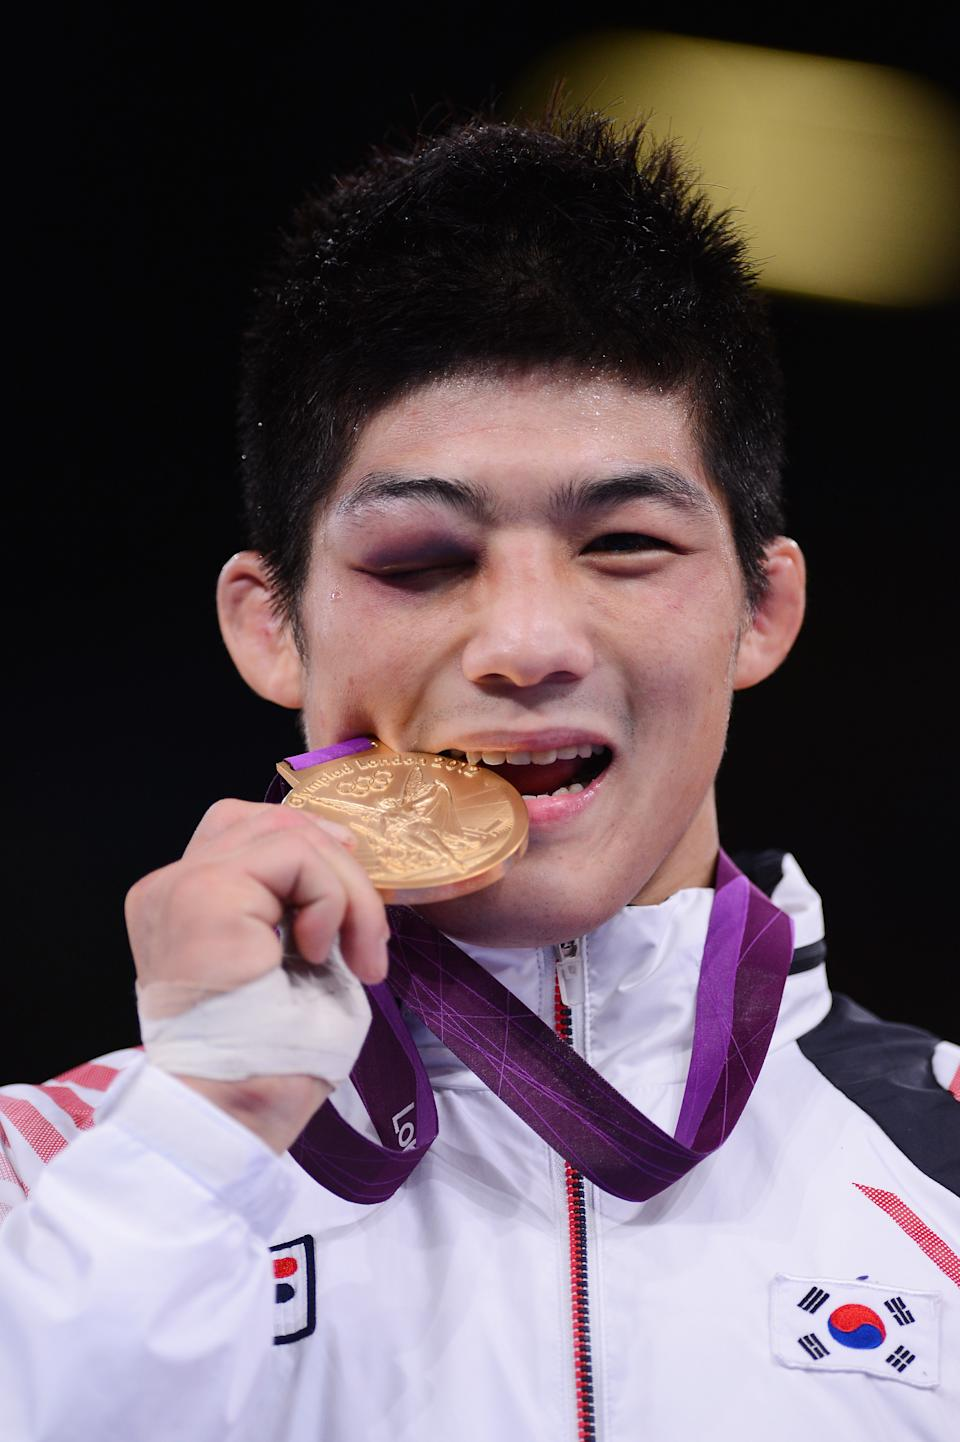 LONDON, ENGLAND - AUGUST 07: Gold medalist Hyeonwoo Kim of Korea in the Men's 66kg Greco-Roman Quarter-Final on Day 11 of the London 2012 Olympic Games at ExCeL on August 7, 2012 in London, England. (Photo by Mike Hewitt/Getty Images)